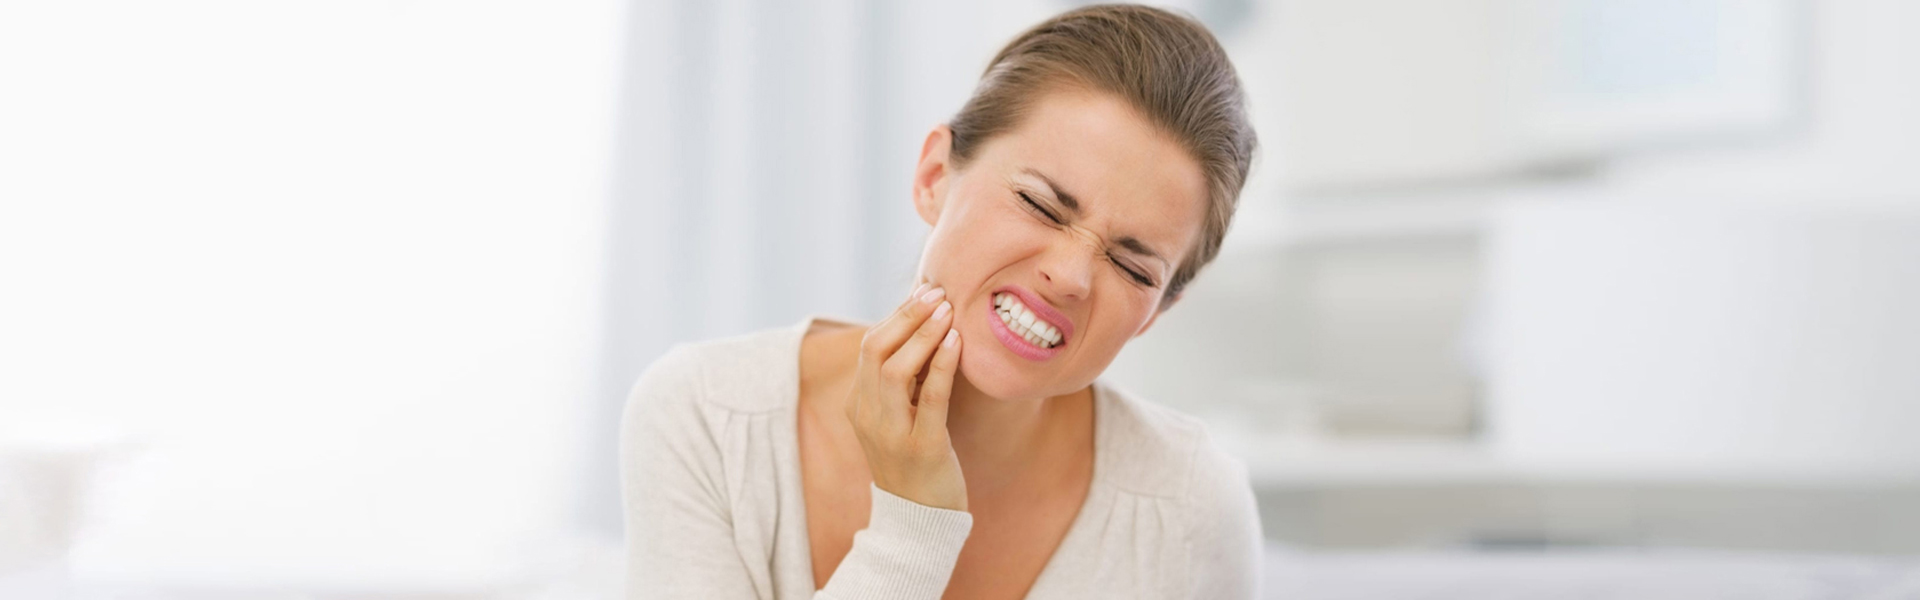 Tooth Pain: Steps To Take Before Seeing An Emergency Dentist